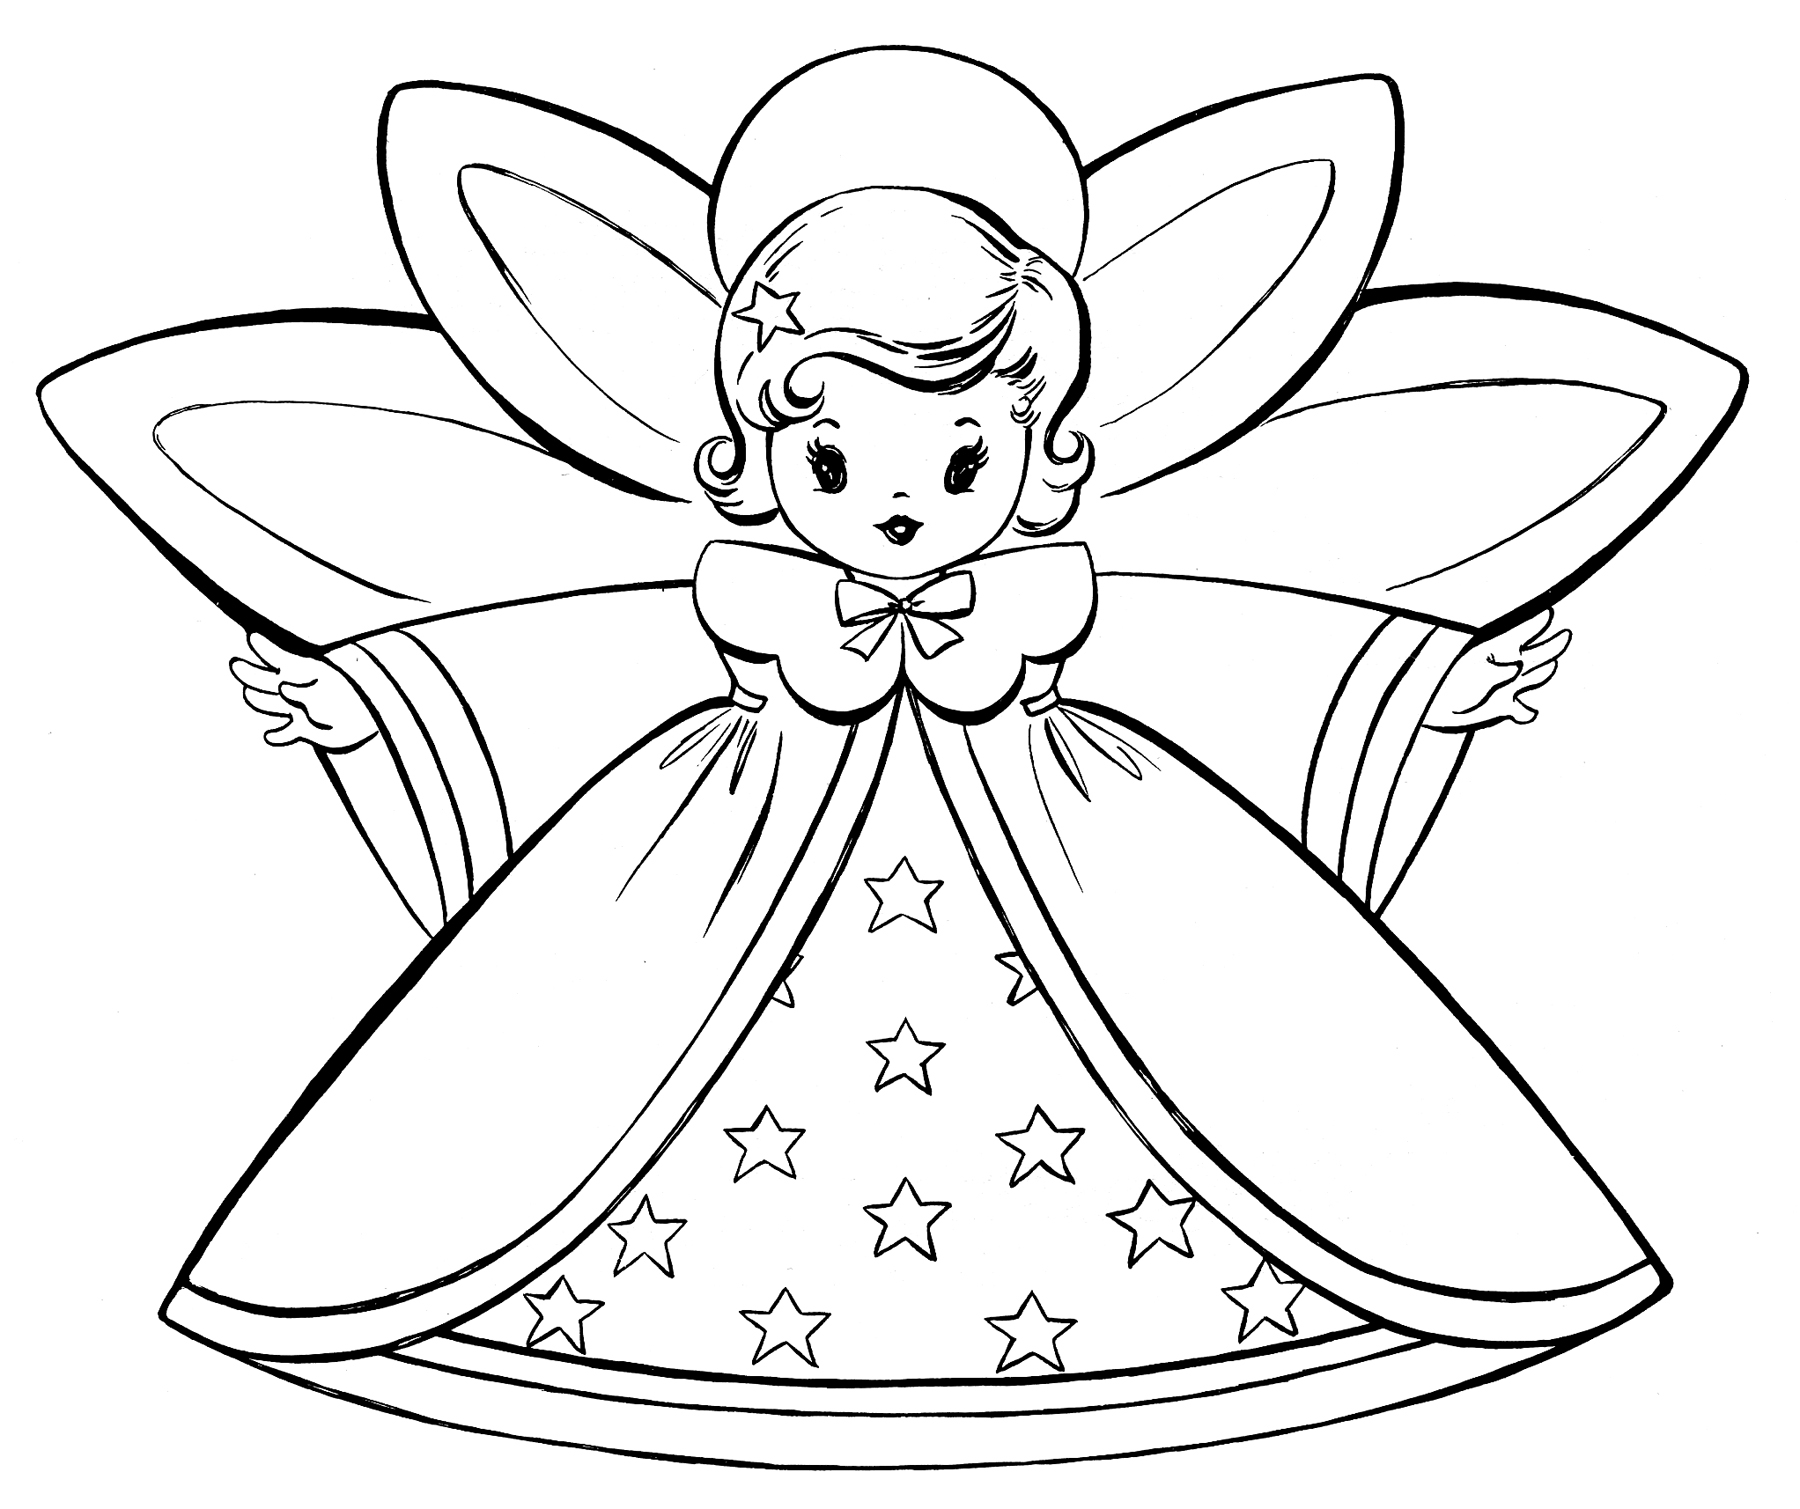 Christmas Coloring Pages For 8 Year Olds With Free Retro Angels The Graphics Fairy